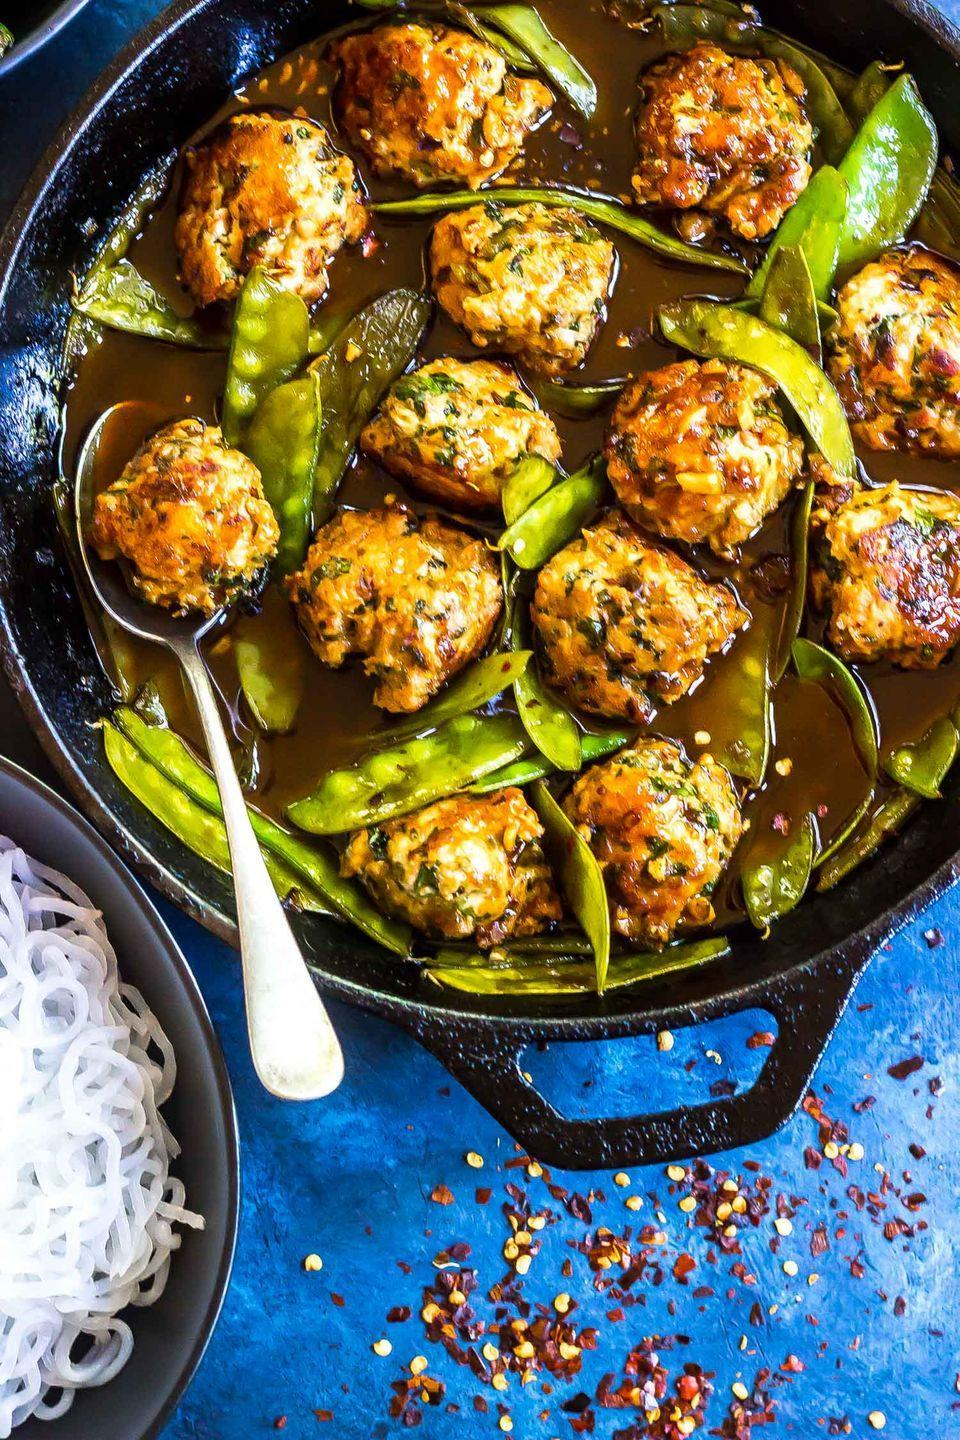 """<p>This bowl of Shirataki noodles with snap peas and meatballs by<a href=""""https://www.castironketo.net/blog/keto-asian-bbq-meatball-noodle-bowl"""" rel=""""nofollow noopener"""" target=""""_blank"""" data-ylk=""""slk:Cast Iron Keto"""" class=""""link rapid-noclick-resp""""> Cast Iron Keto</a> takes only 30 minutes to whip up and uses savory ingredients and spices like garlic, red pepper, sriracha, and tamari to give the dish a huge burst of flavor. Each serving is under 400 calories and has roughly 24 grams of protein to prevent mindless snacking later on.</p>"""